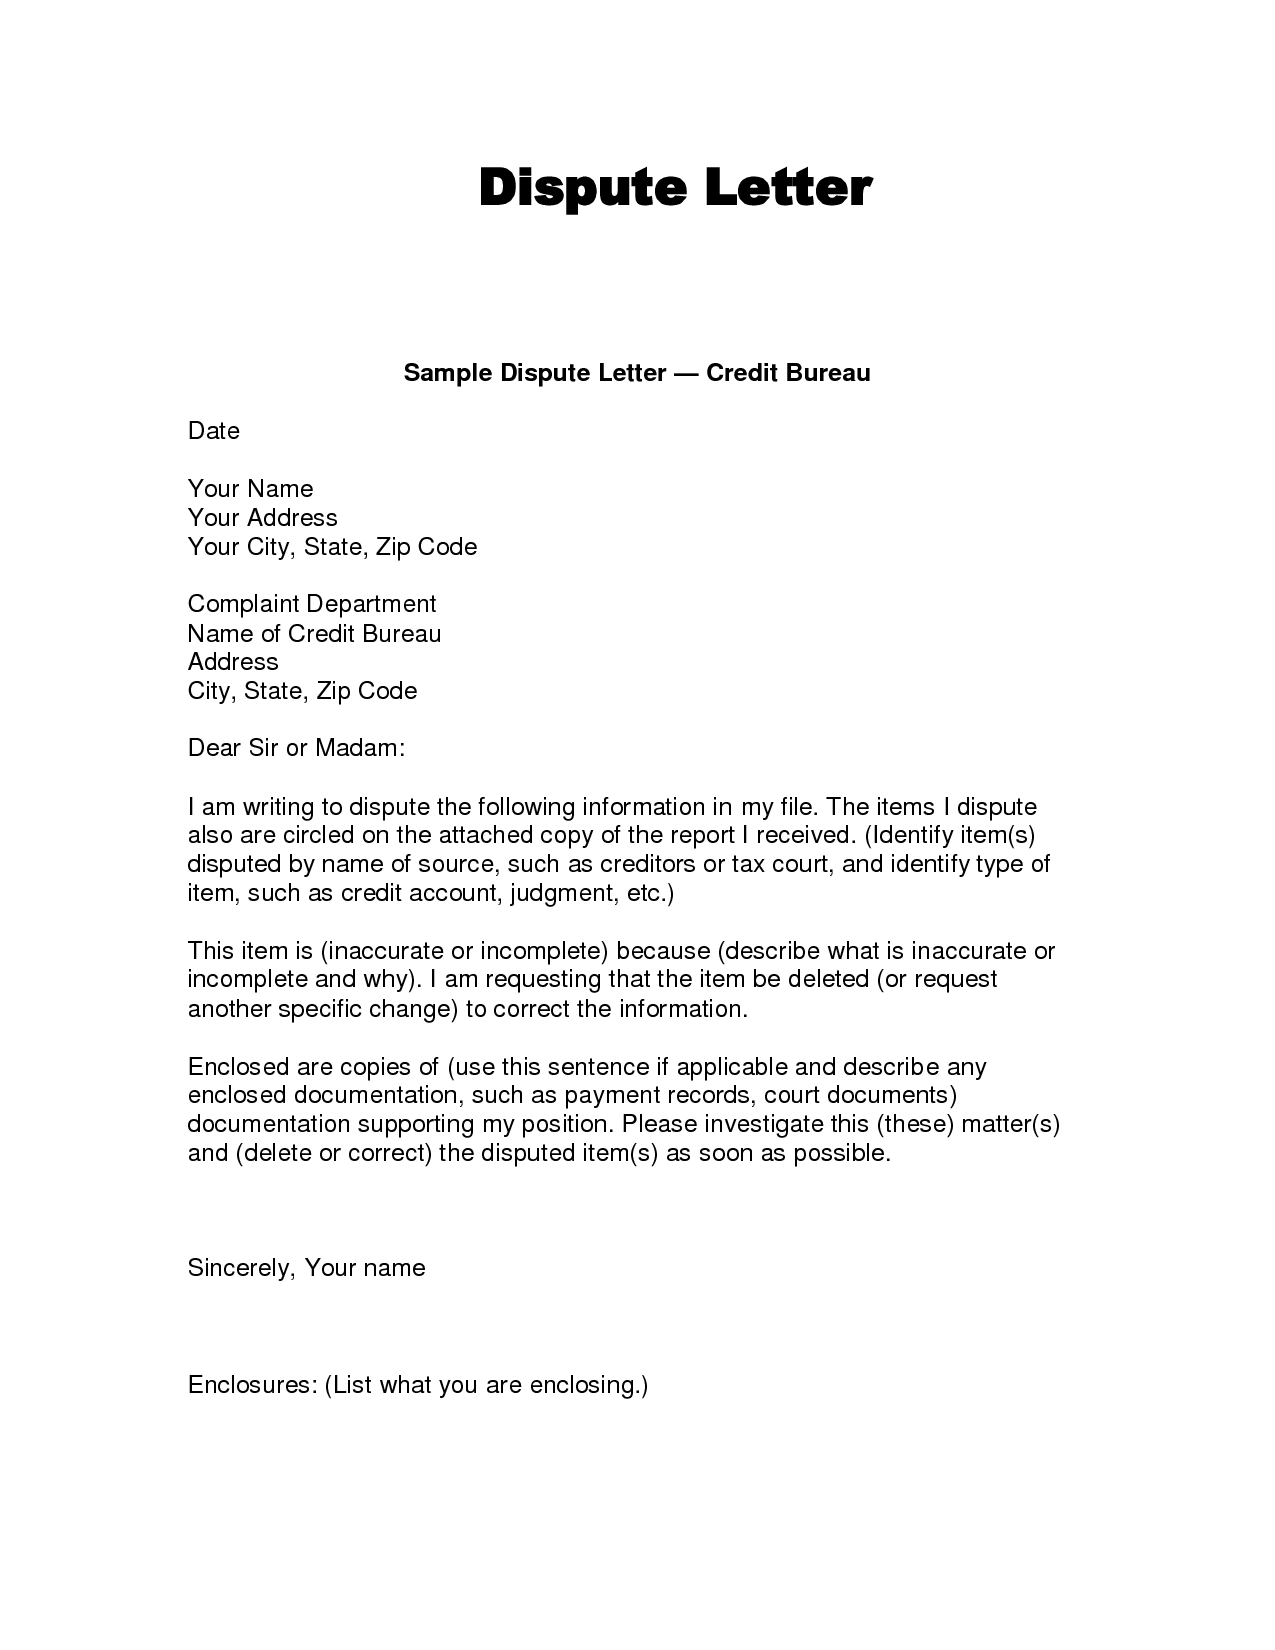 Writing dispute letter format 2018 goals to do for Free credit repair letters templates